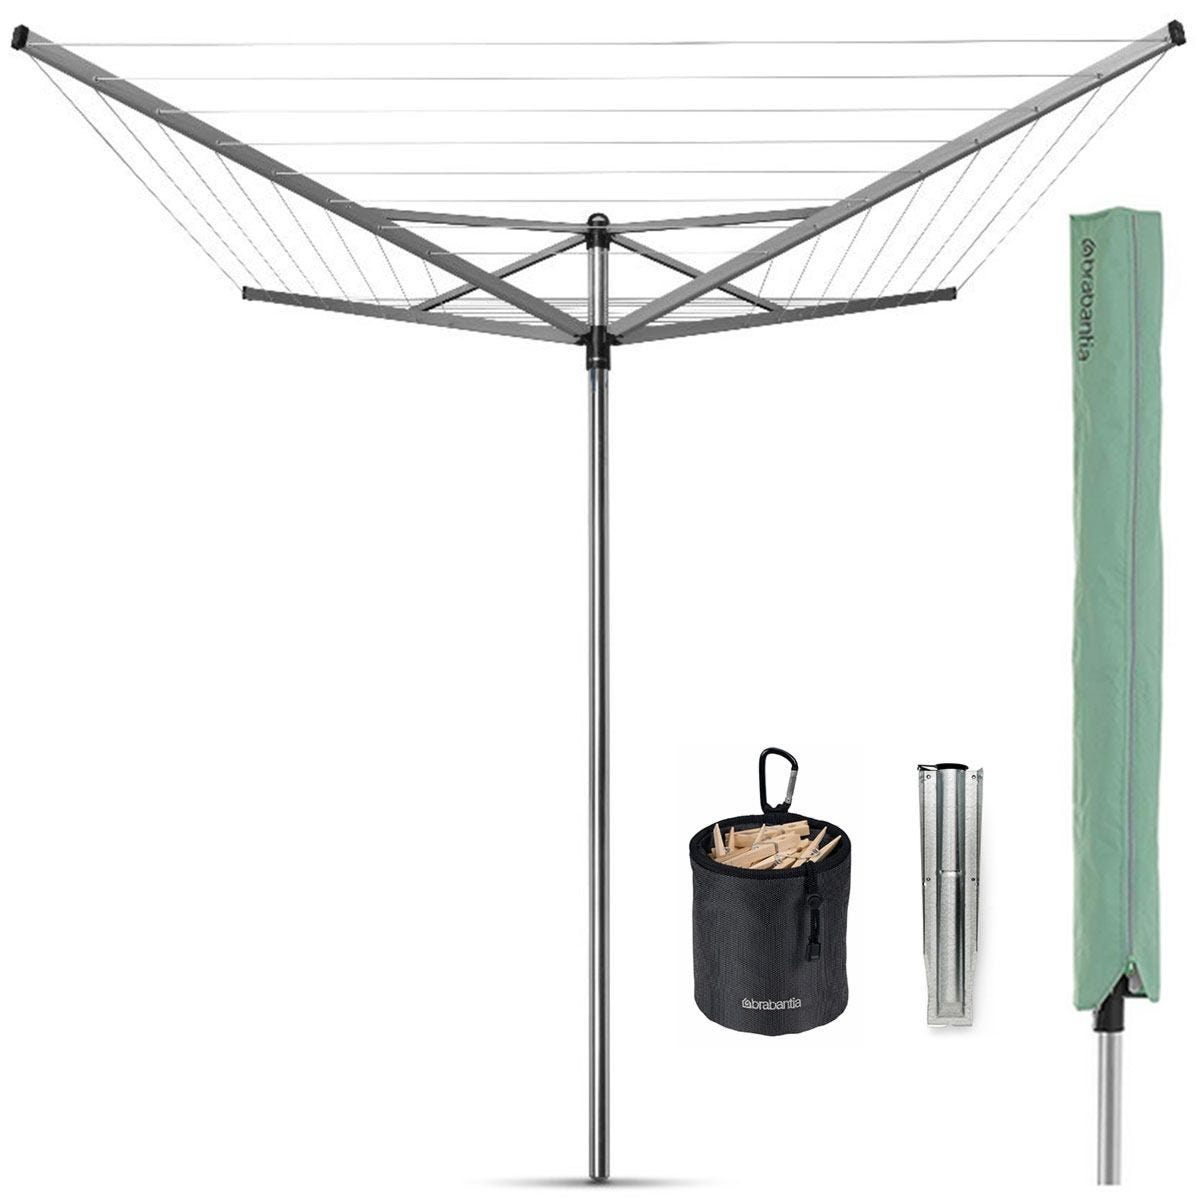 Brabantia Topspinner 40m 4-Arm Rotary Airer with Ground Spike and Accessories